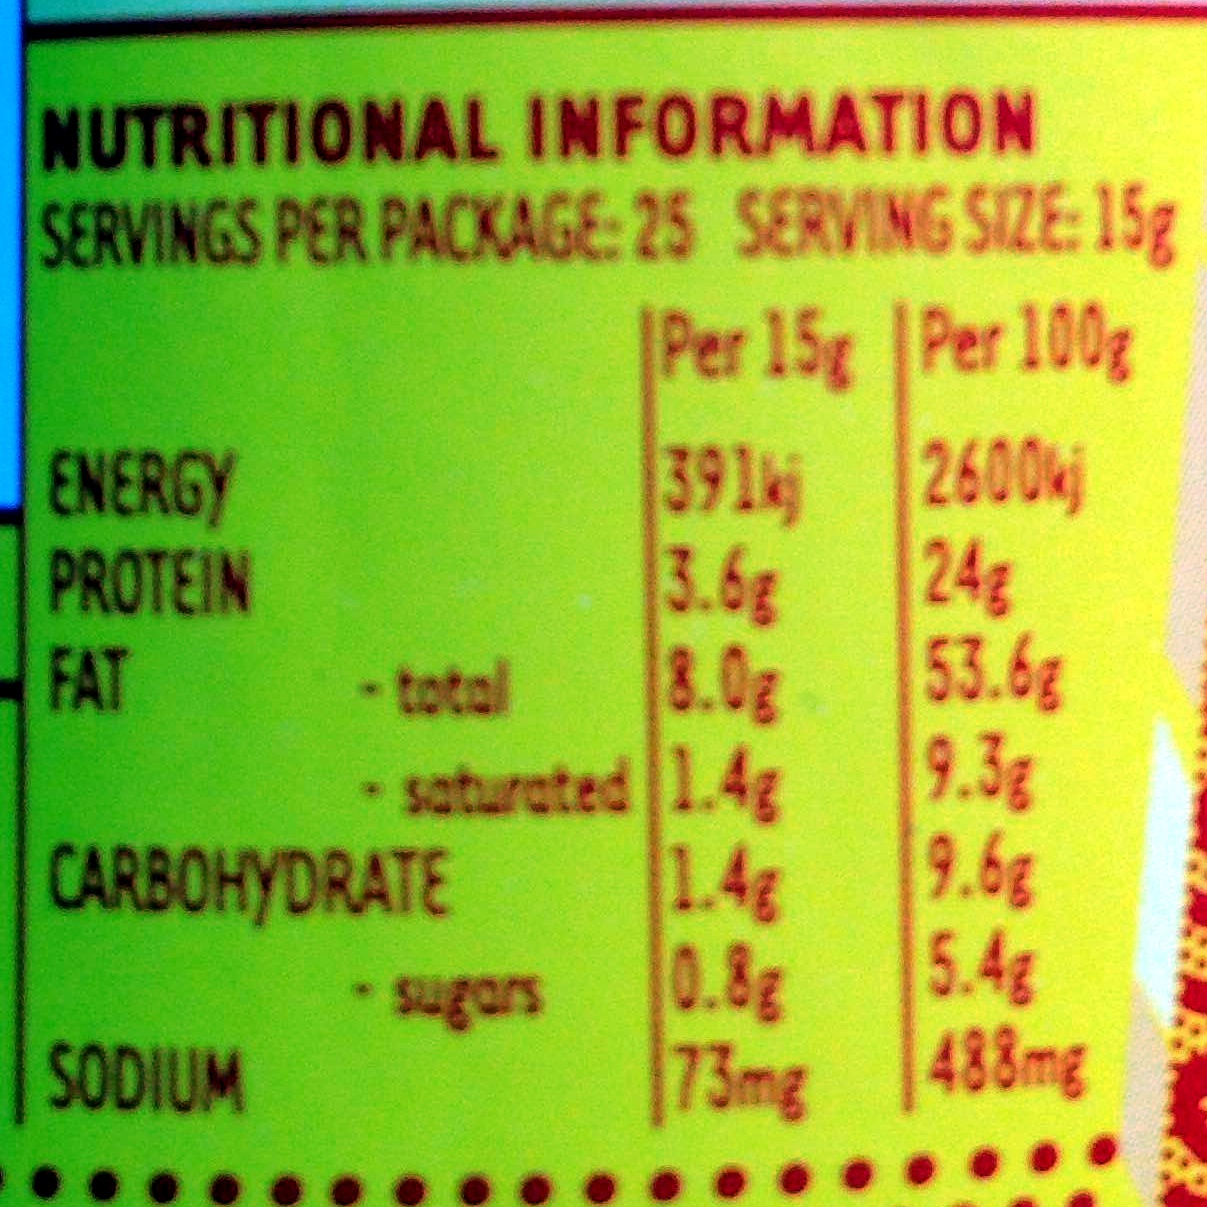 Ridiculously Delicious Peanut Butter Super Smooth - Nutrition facts - en